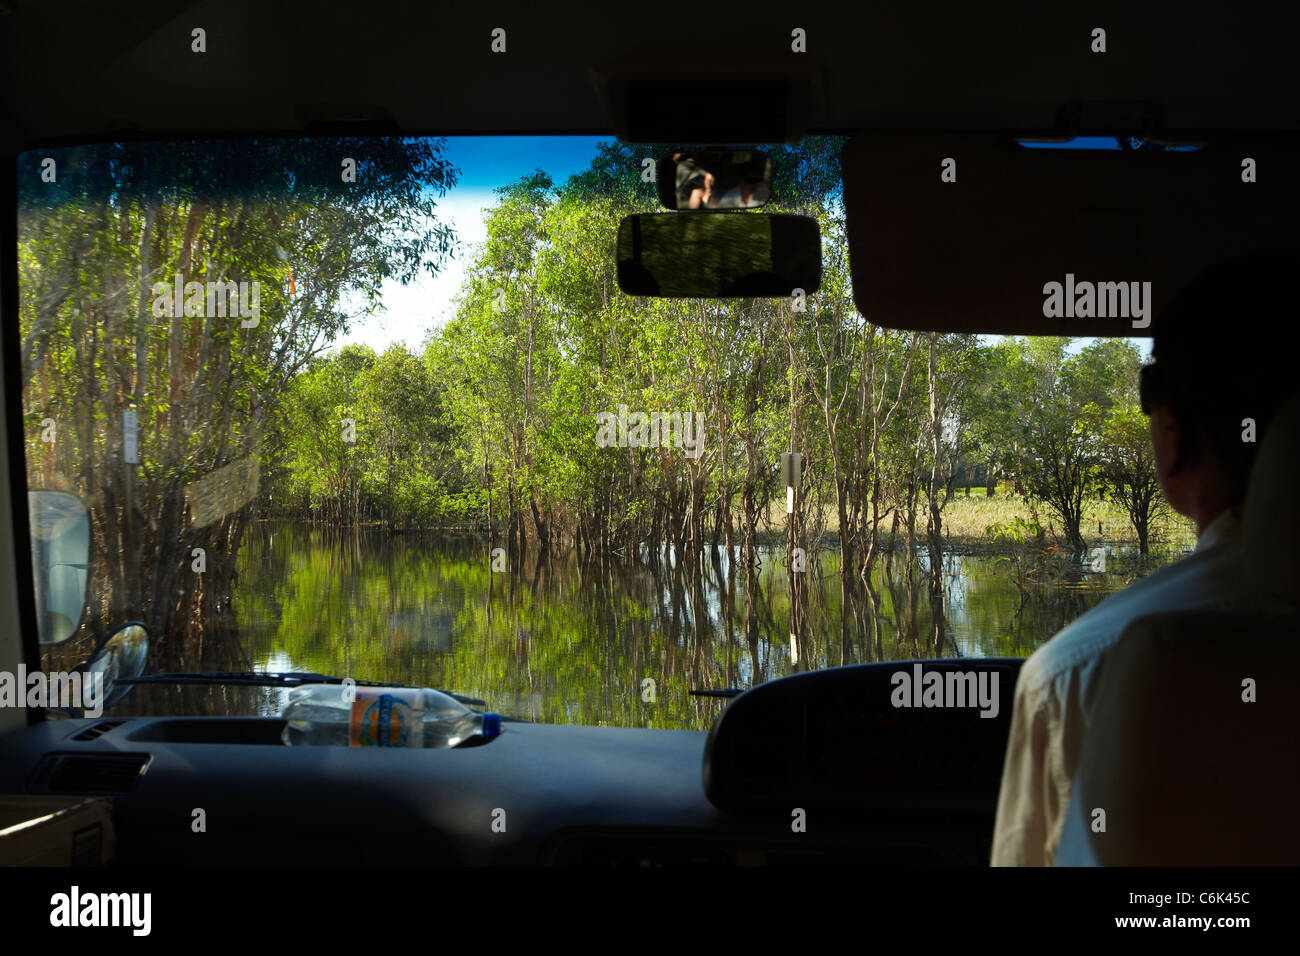 Yellow Water Cruises bus on flooded road, Yellow Water Billabong, Kakadu National Park, Northern Territory, Australia - Stock Image